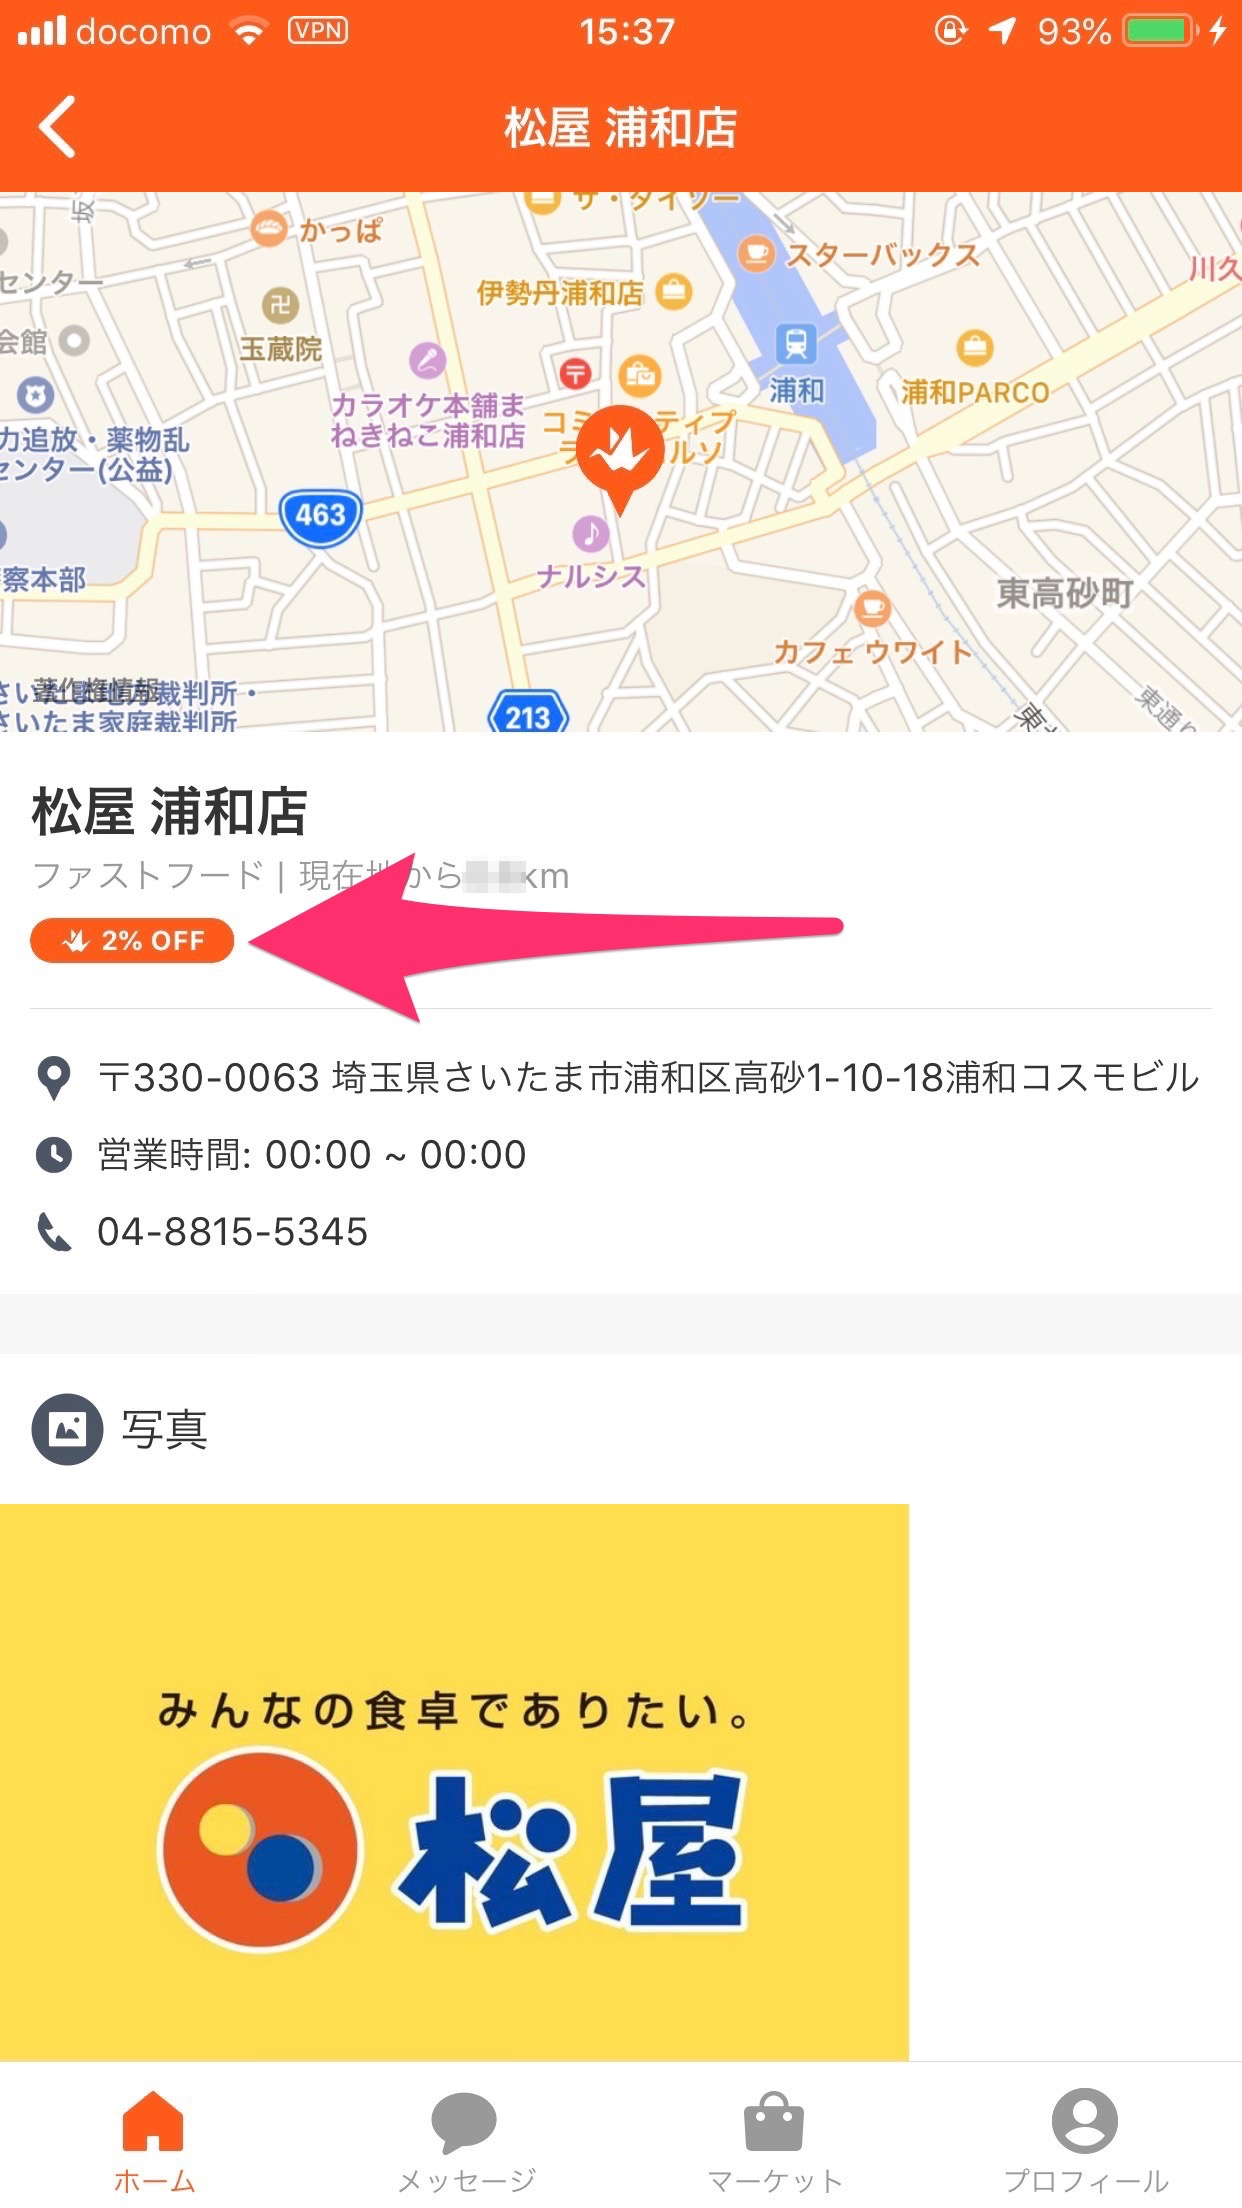 「Origami Pay」で実質5%還元 1